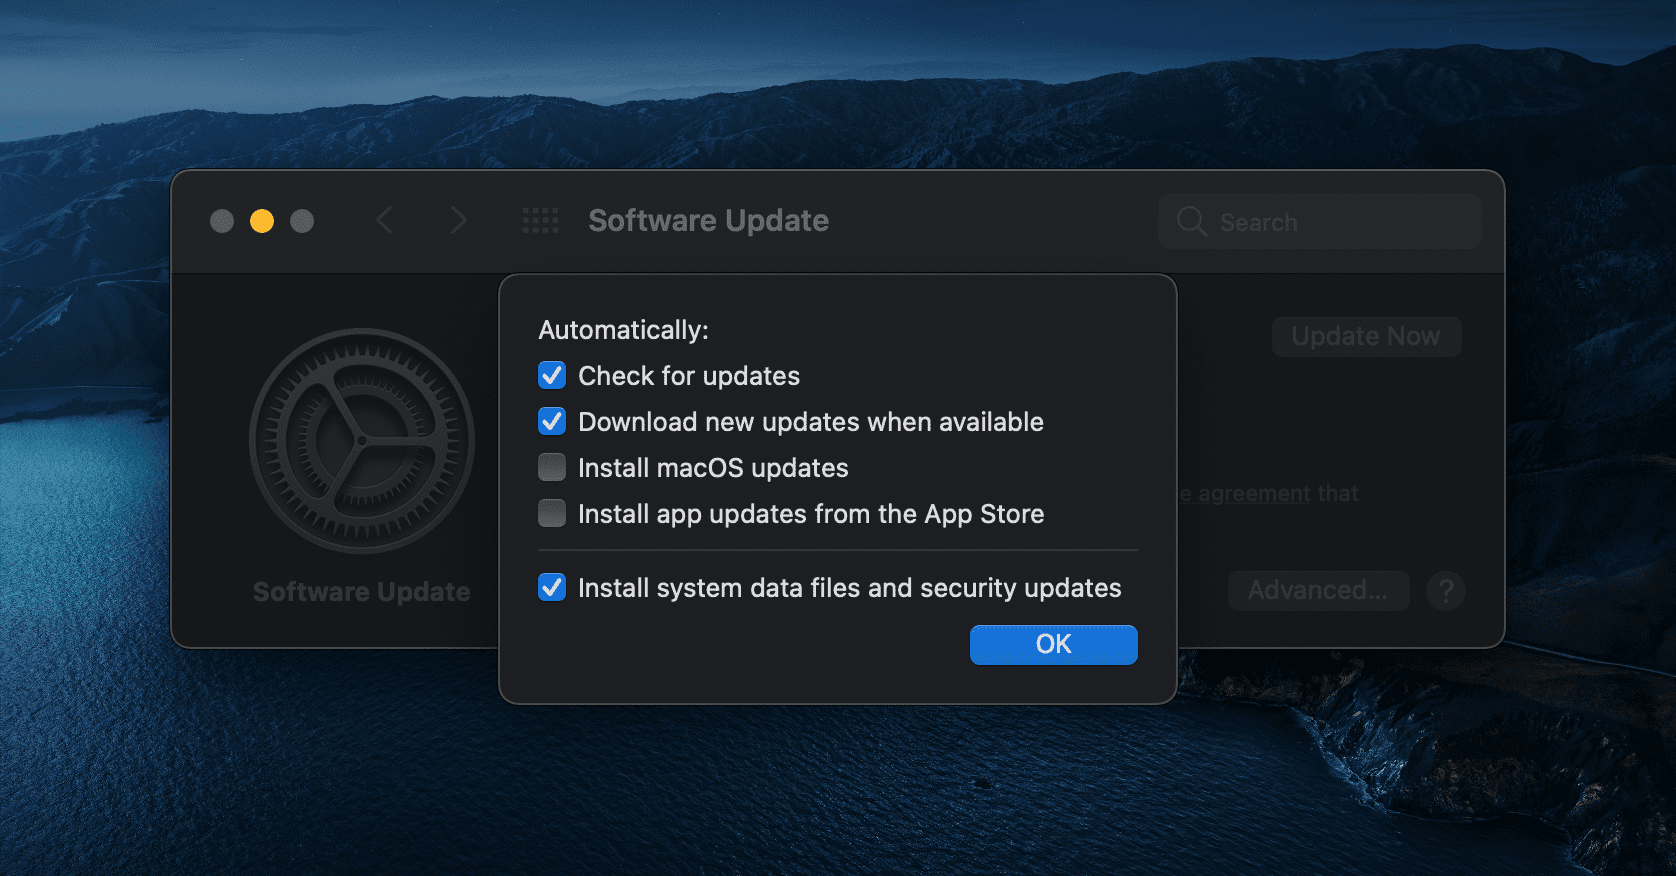 Advanced Software Update Options